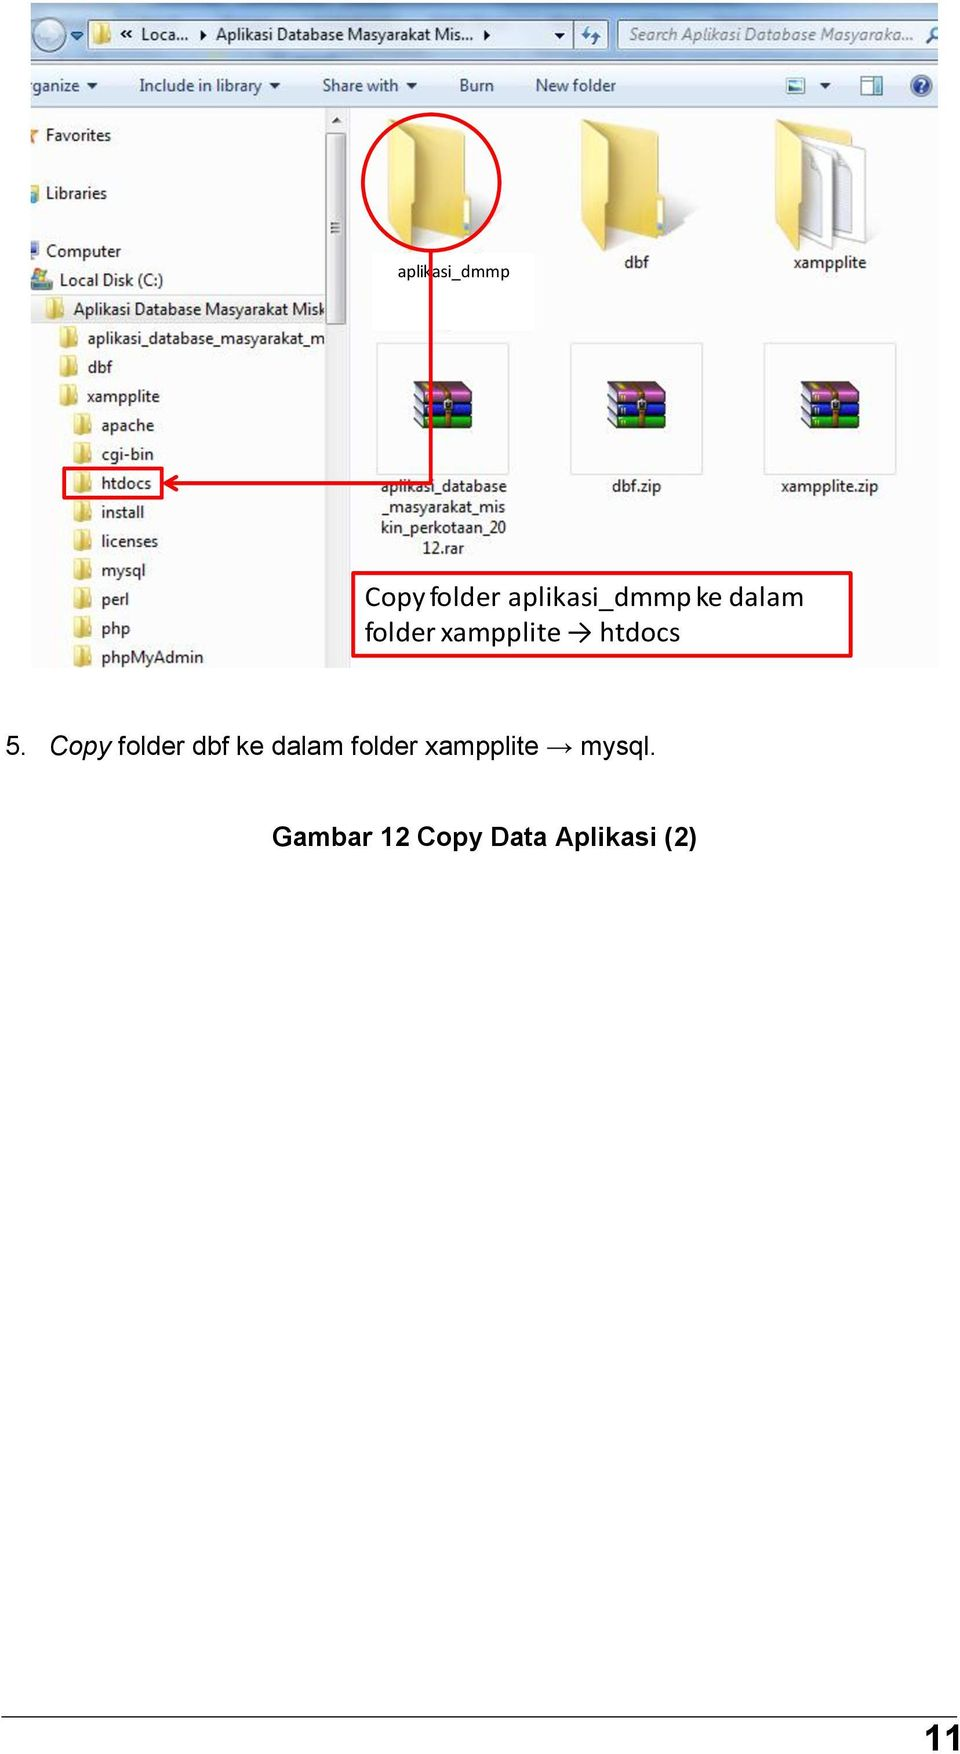 Copy folder dbf ke dalam folder